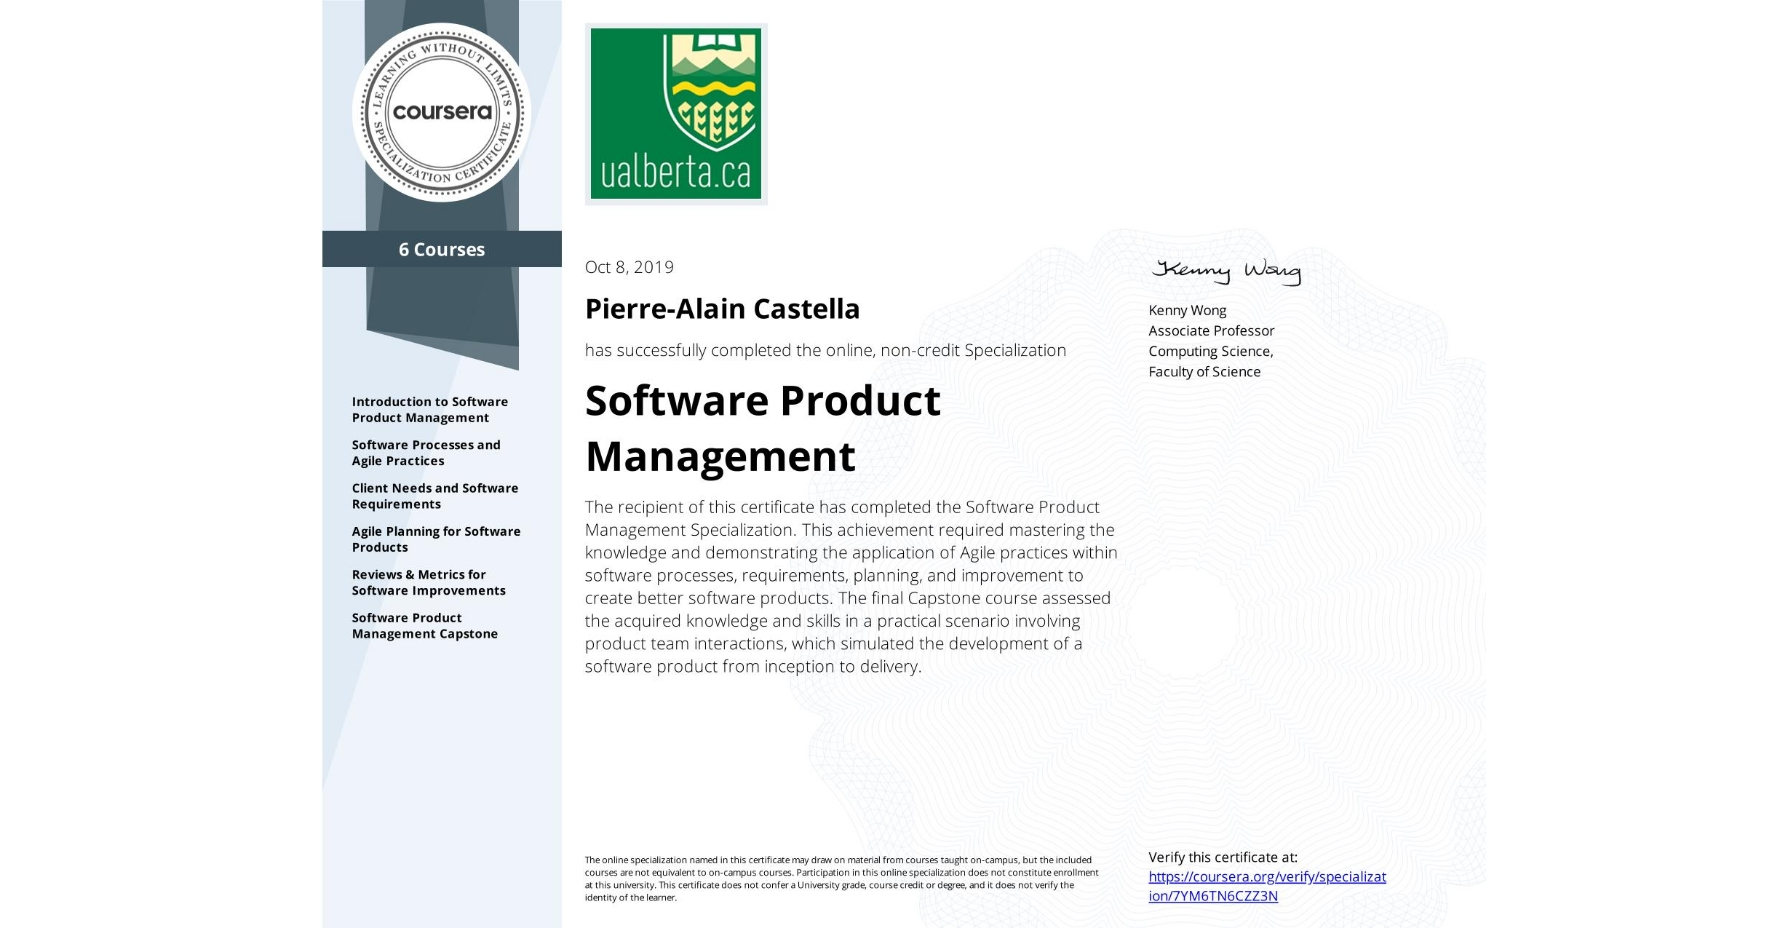 View certificate for Pierre-Alain Castella, Software Product Management, offered through Coursera. The recipient of this certificate has completed the Software Product Management Specialization. This achievement required mastering the knowledge and demonstrating the application of Agile practices within software processes, requirements, planning, and improvement to create better software products. The final Capstone course assessed the acquired knowledge and skills in a practical scenario involving product team interactions, which simulated the development of a software product from inception to delivery.